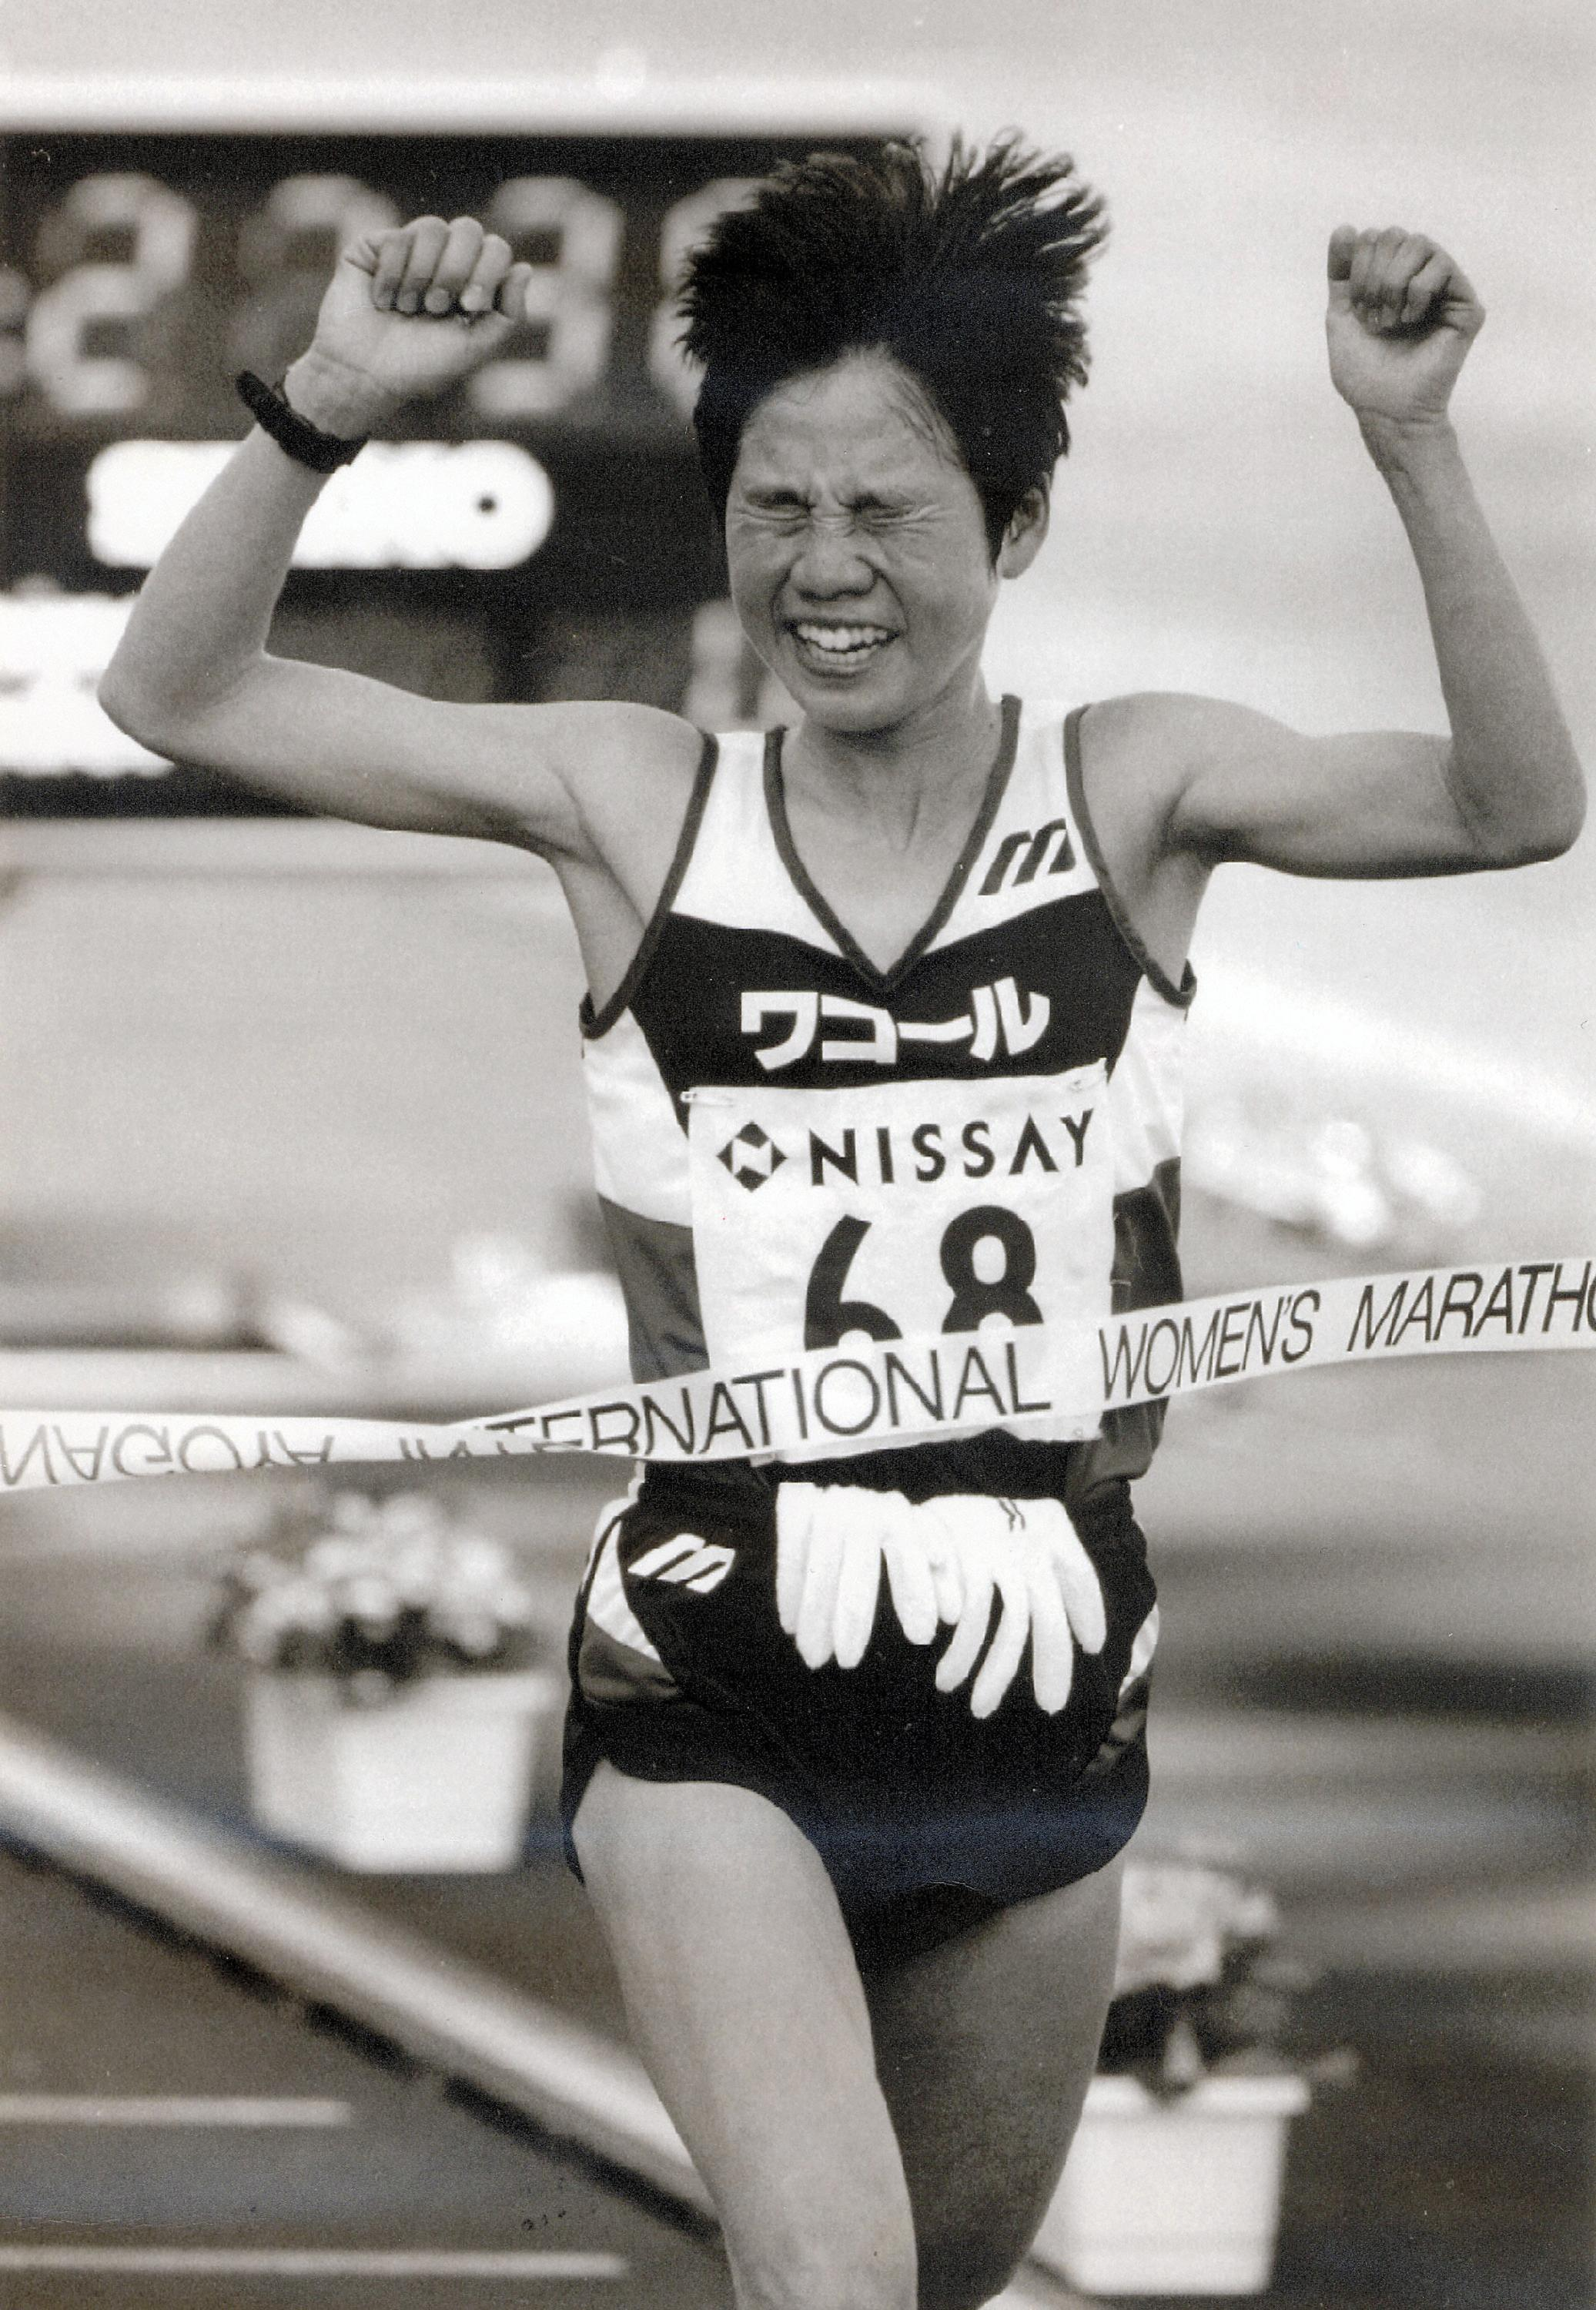 She was suspended for doping in 1995 after winning the Sapporo Half Marathon